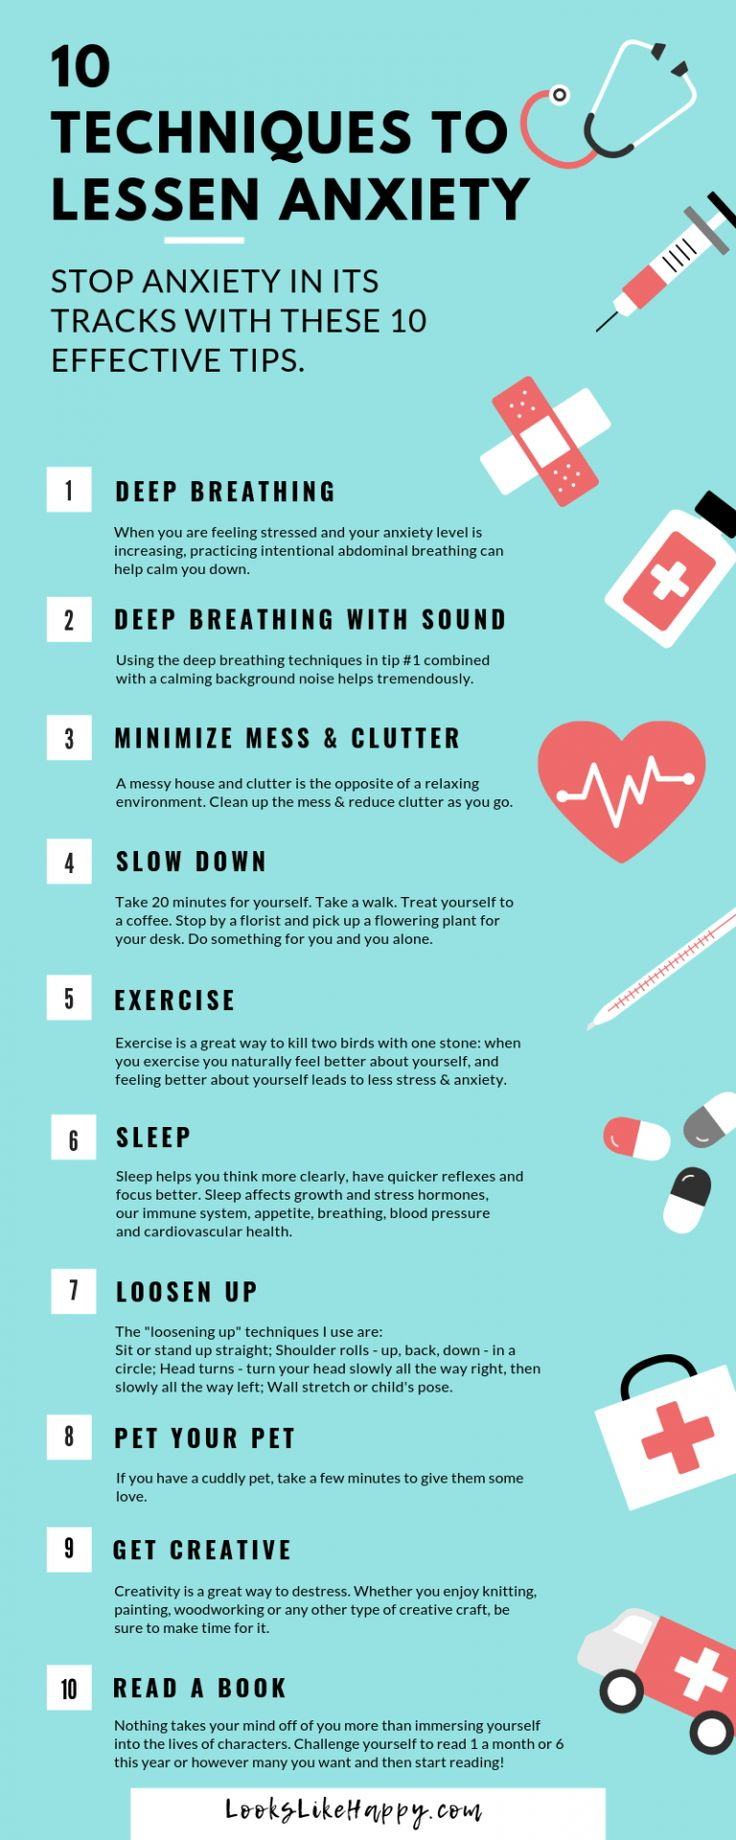 Psychology-Infographic-10-Techniques-to-Calm-Your-Anxiety Psychology Infographic : 10 Techniques to Calm Your Anxiety - Without Having a Drink